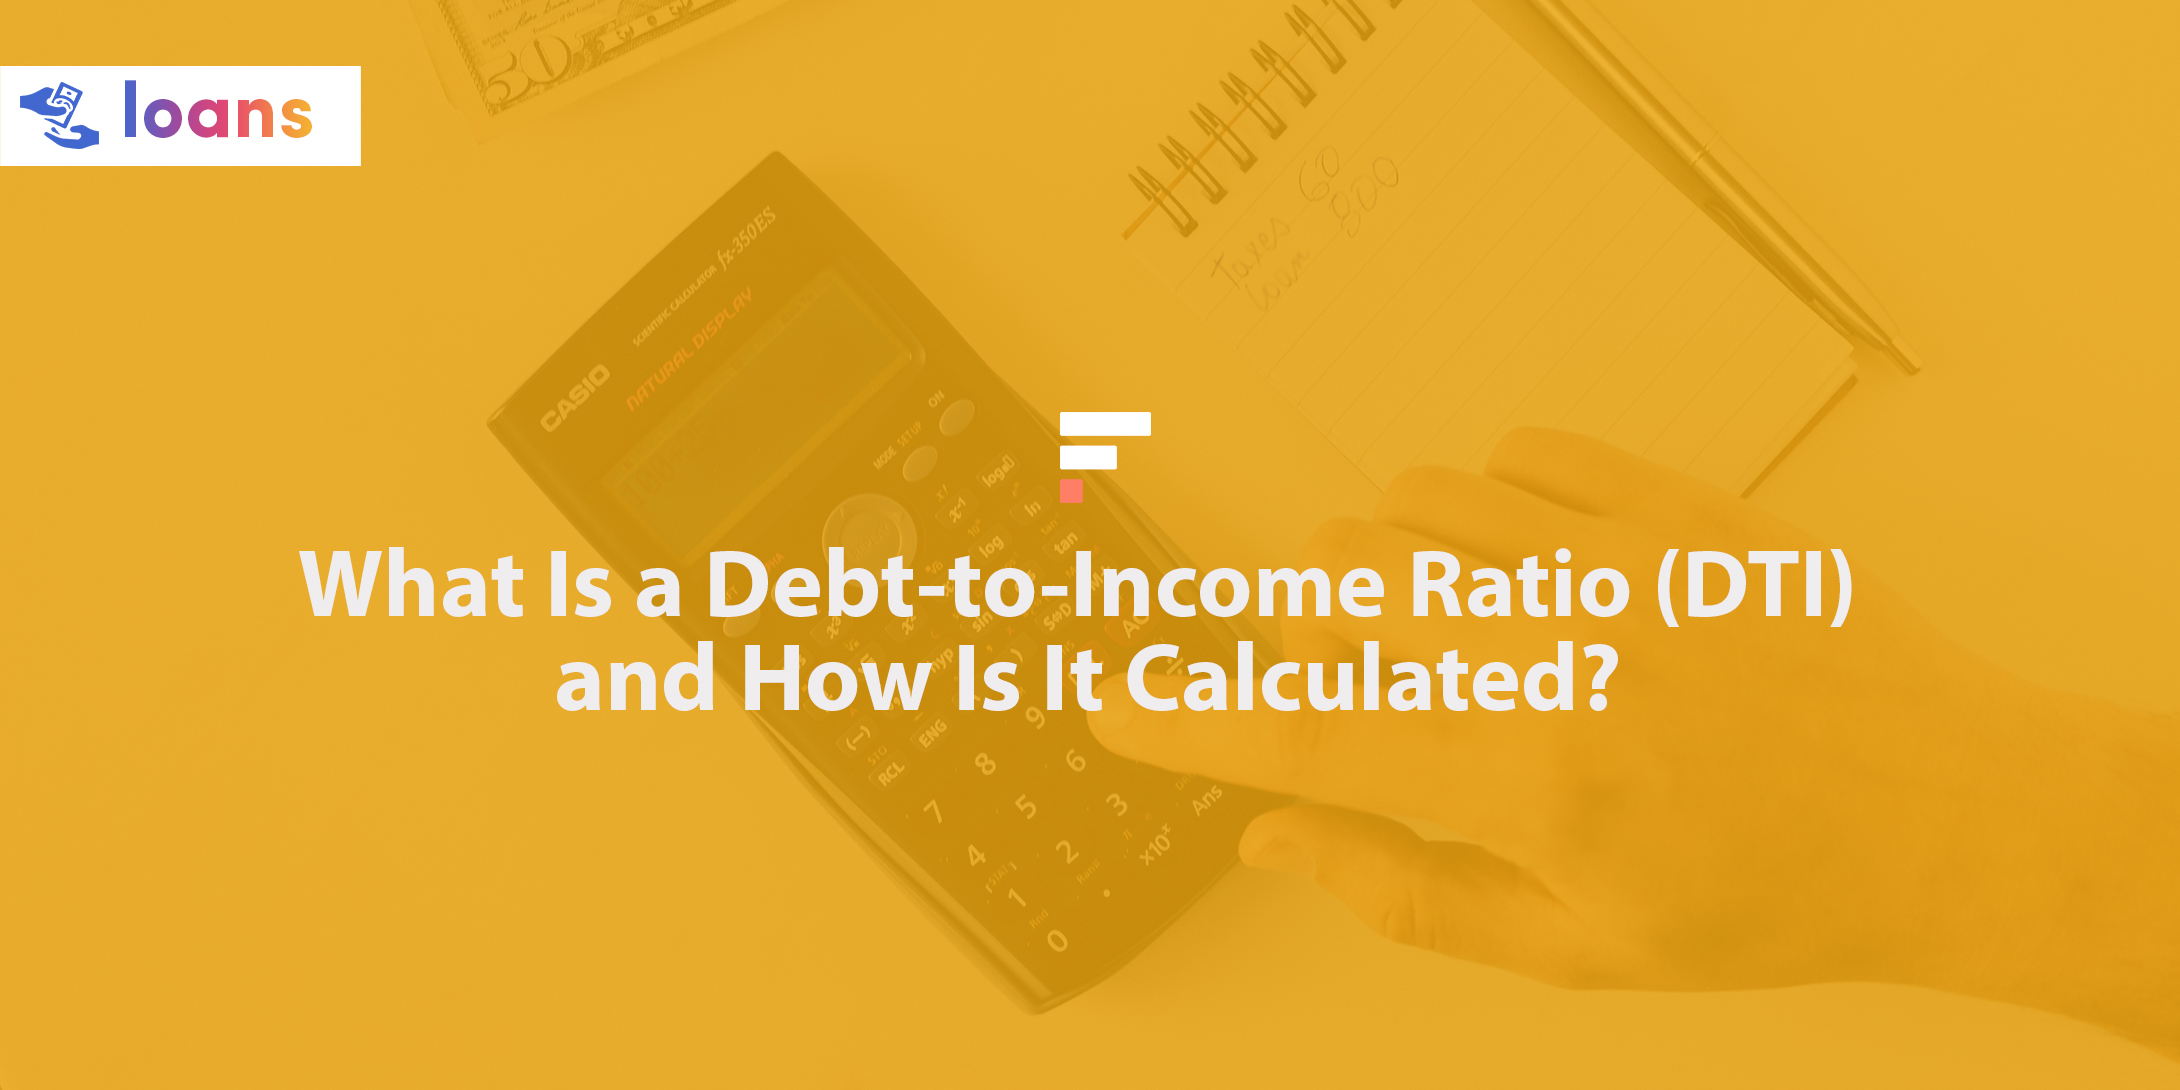 What is debt to income ratio and how is it calculated